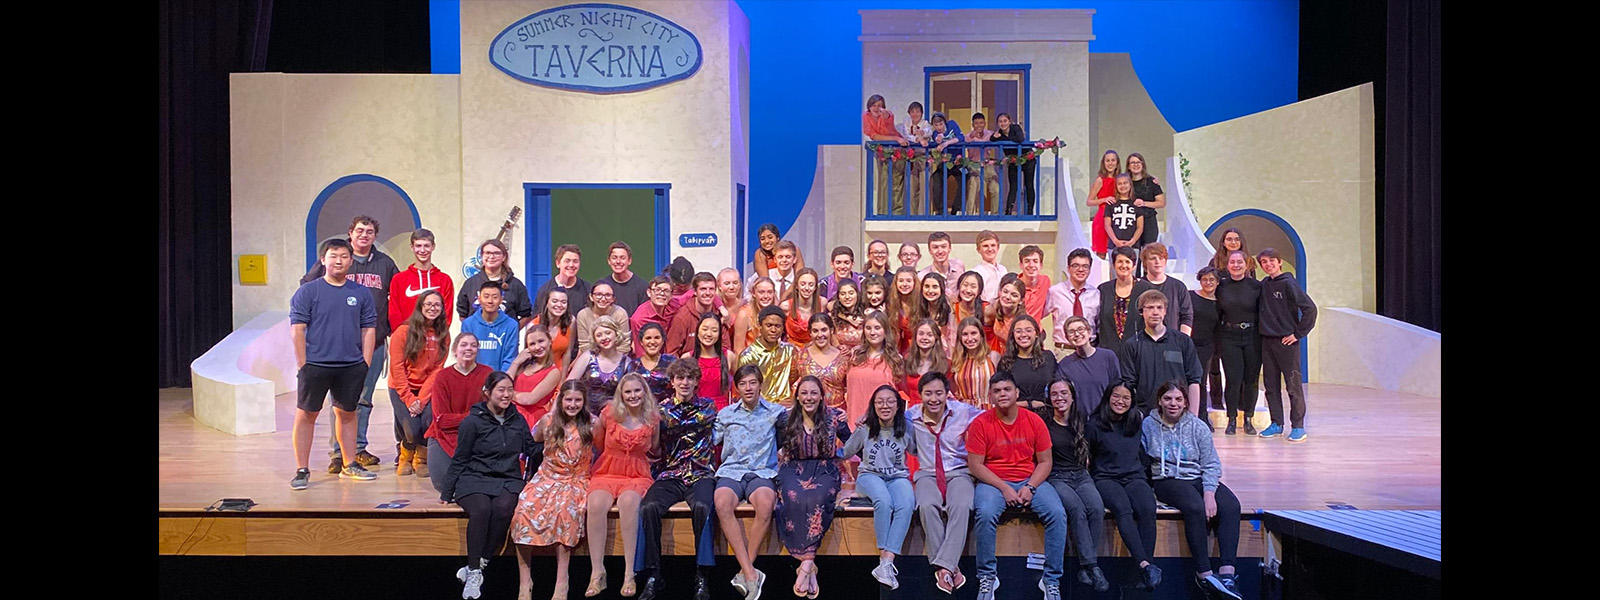 VHHS Cast & Crew of Mamma Mia